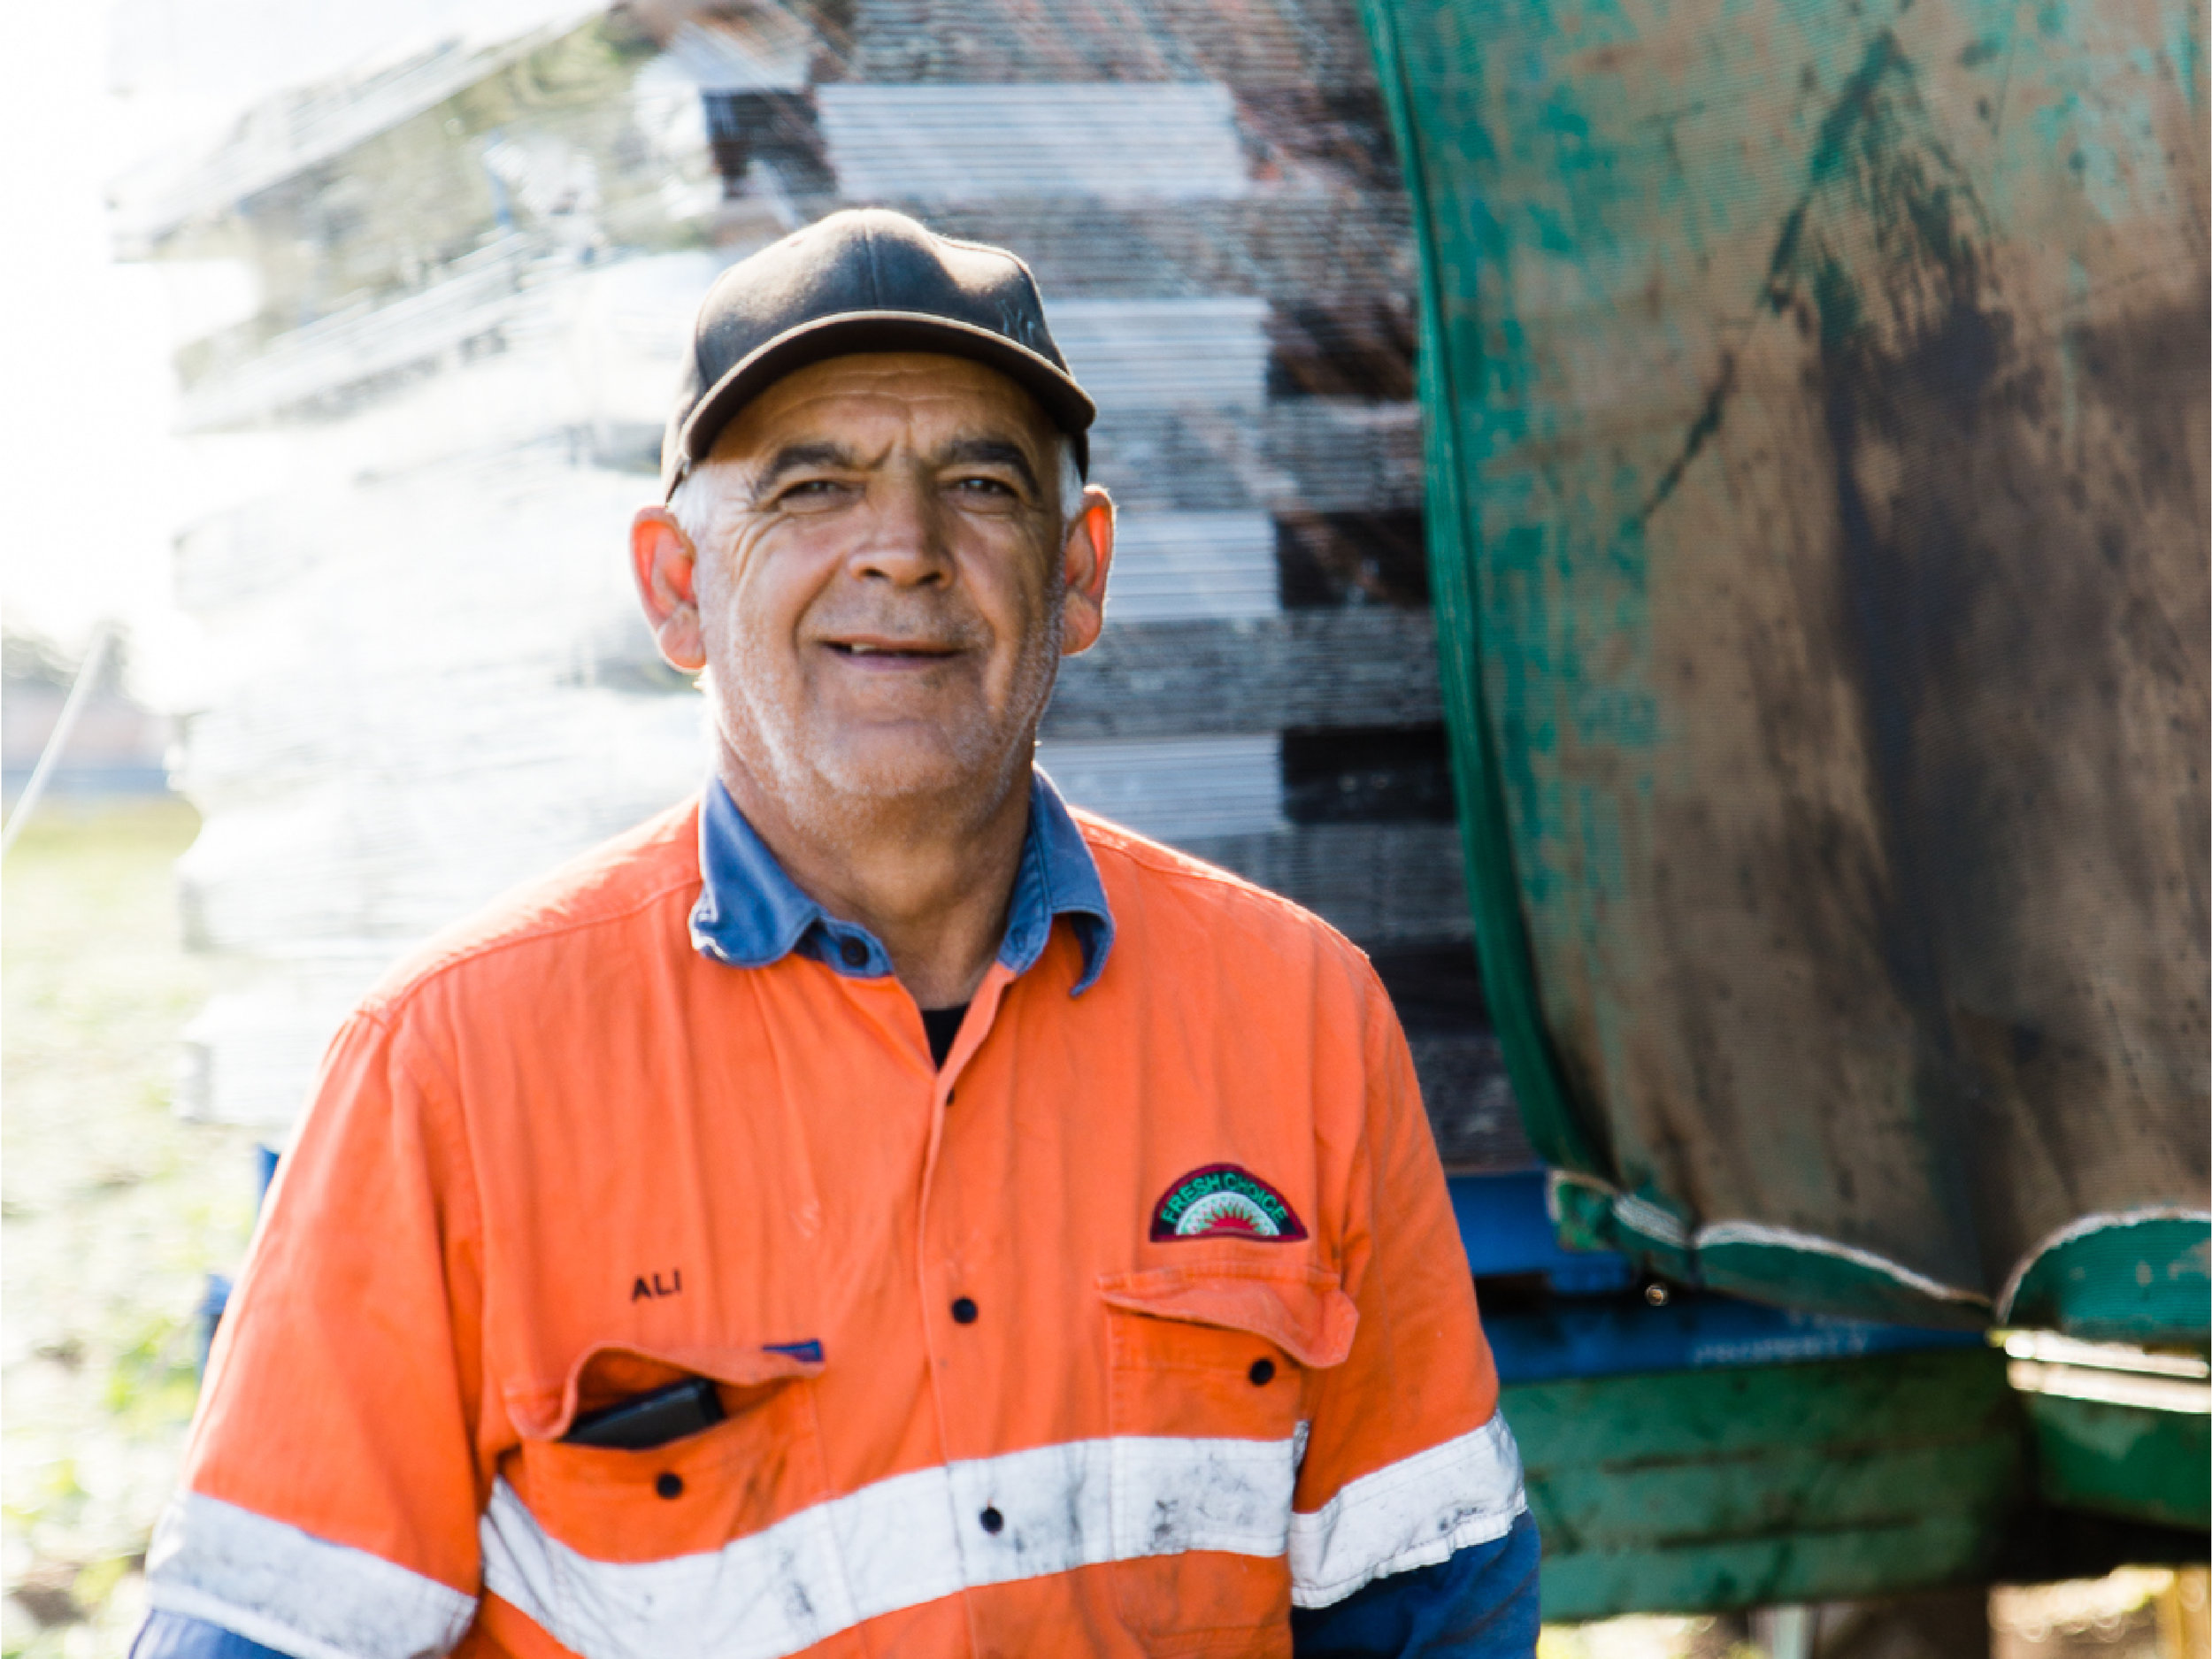 Ali manages his harvesting crew and happens to be one of our oldest employees, not because of his age but because of how long he has been working with us! Ali has been a valued employee for Koala Farms from 1990! Ali ensures we cut, pack and send some of the freshest iceberg lettuce around Australia.